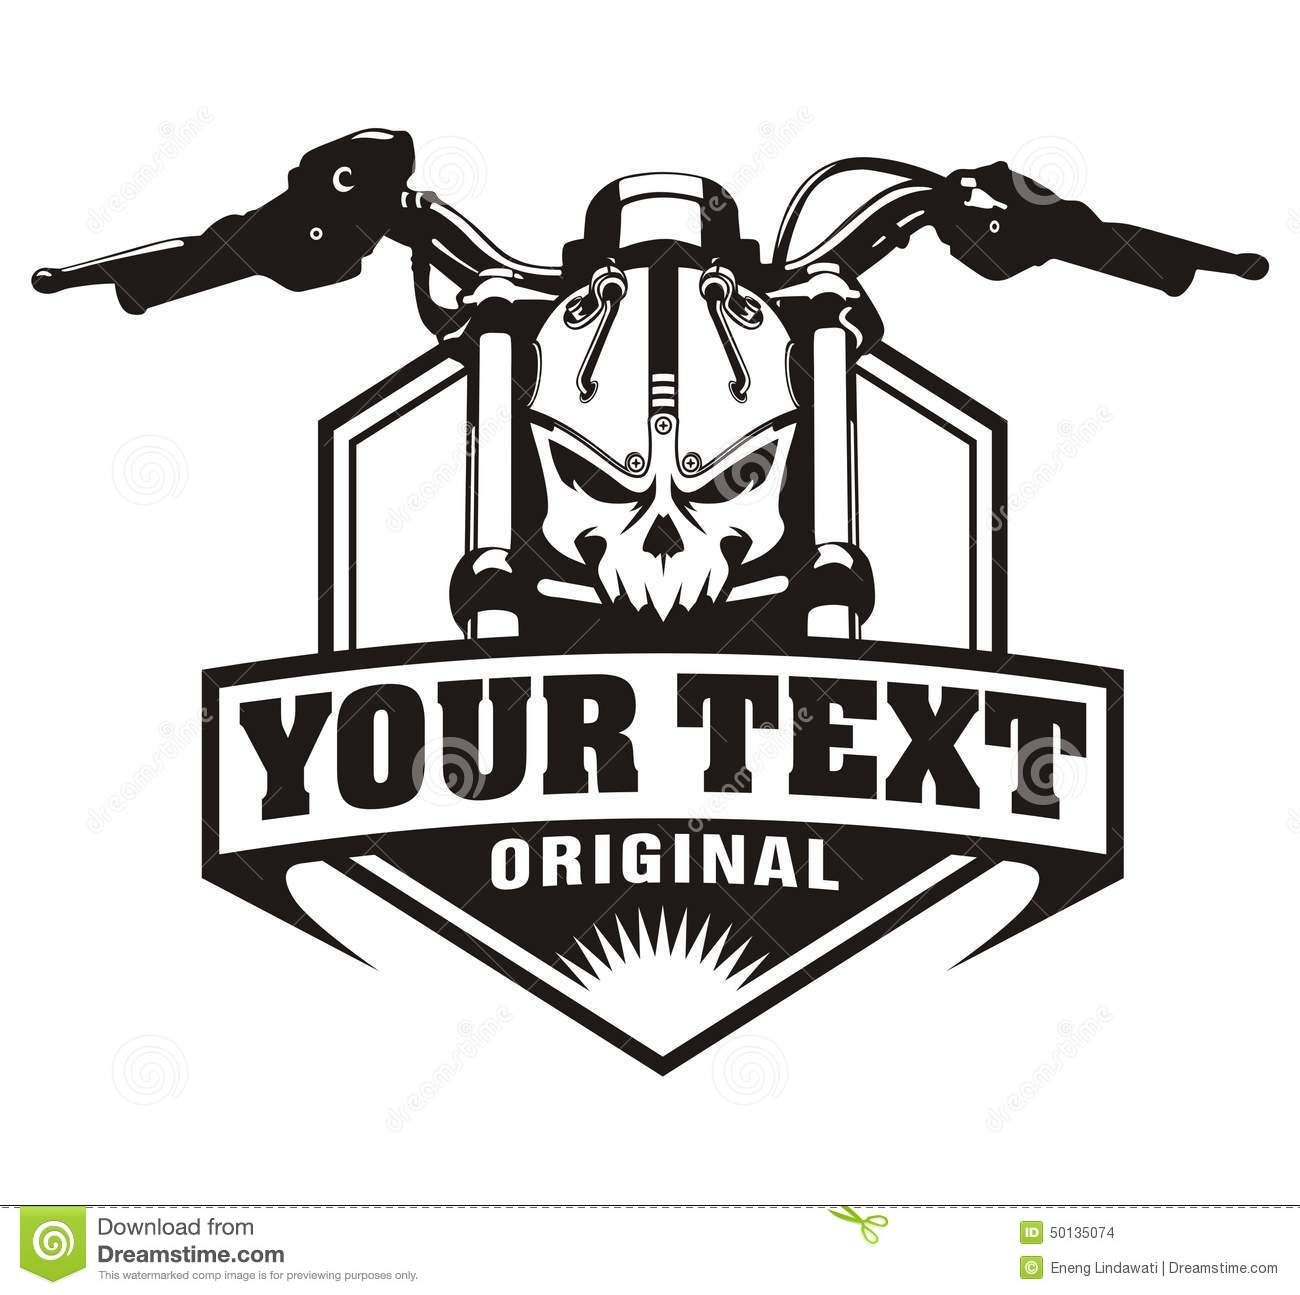 Happy birthday harley davidson mc free clipart png black and white stock Image result for Pencil Drawings Harley-Davidson Symbol | T-shirt ... png black and white stock